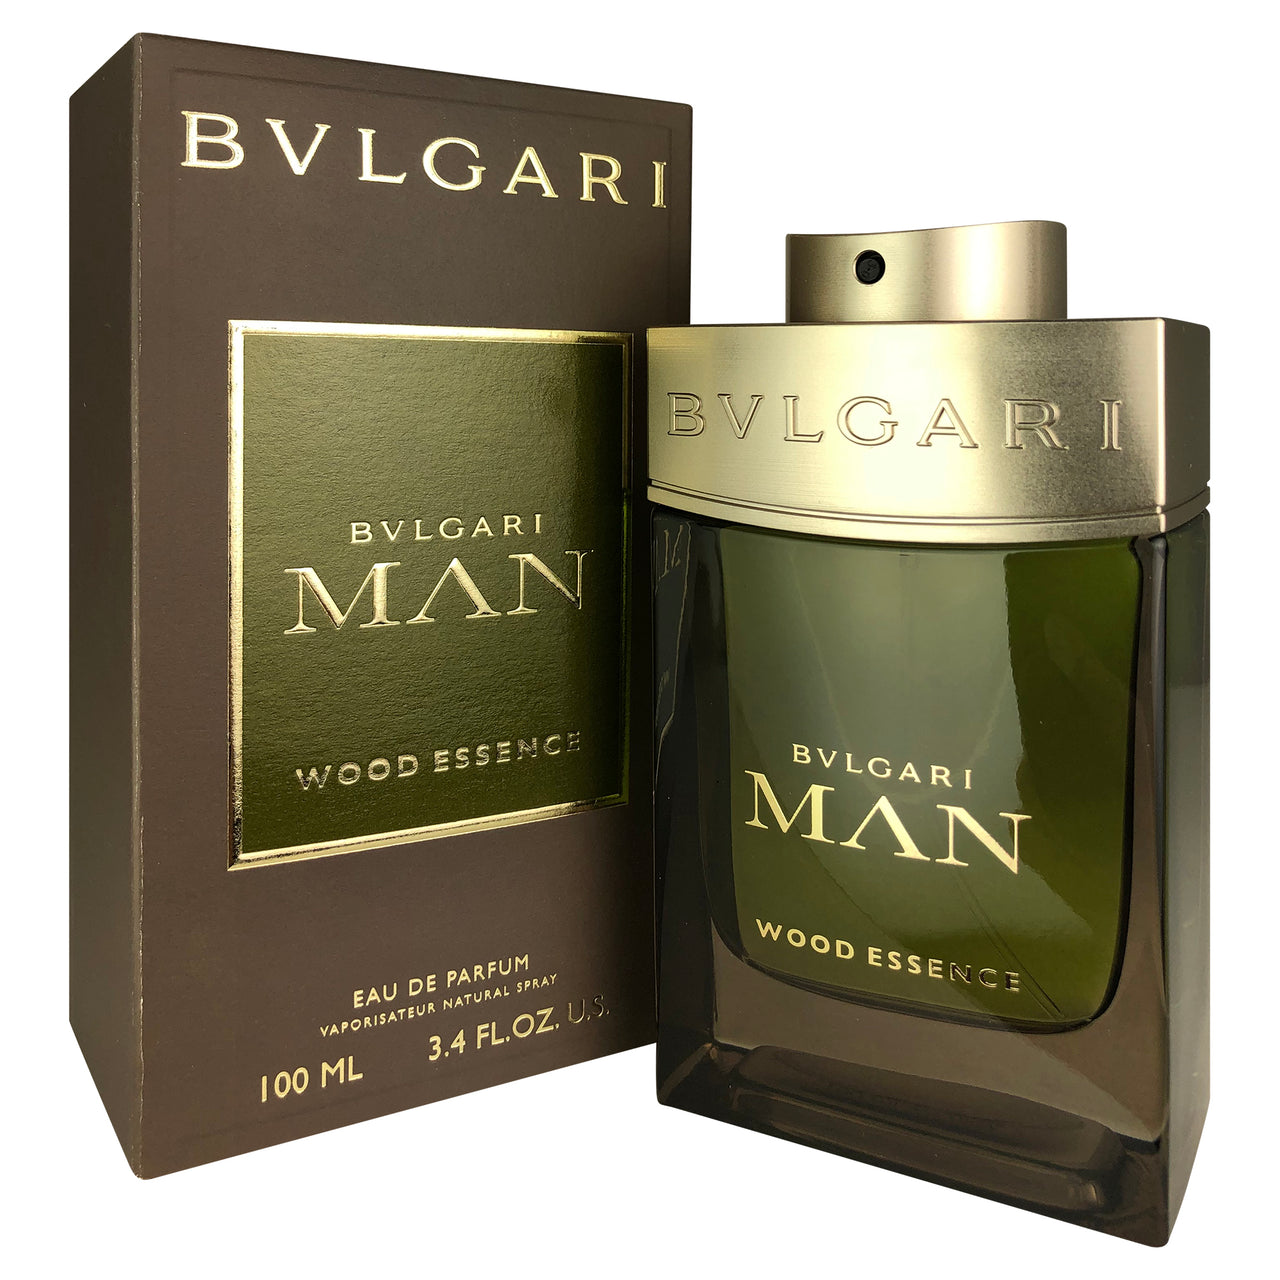 Bvlgari Man Wood Essence For Men By Bvlgari 3.4 oz Eau De Parfum Spray